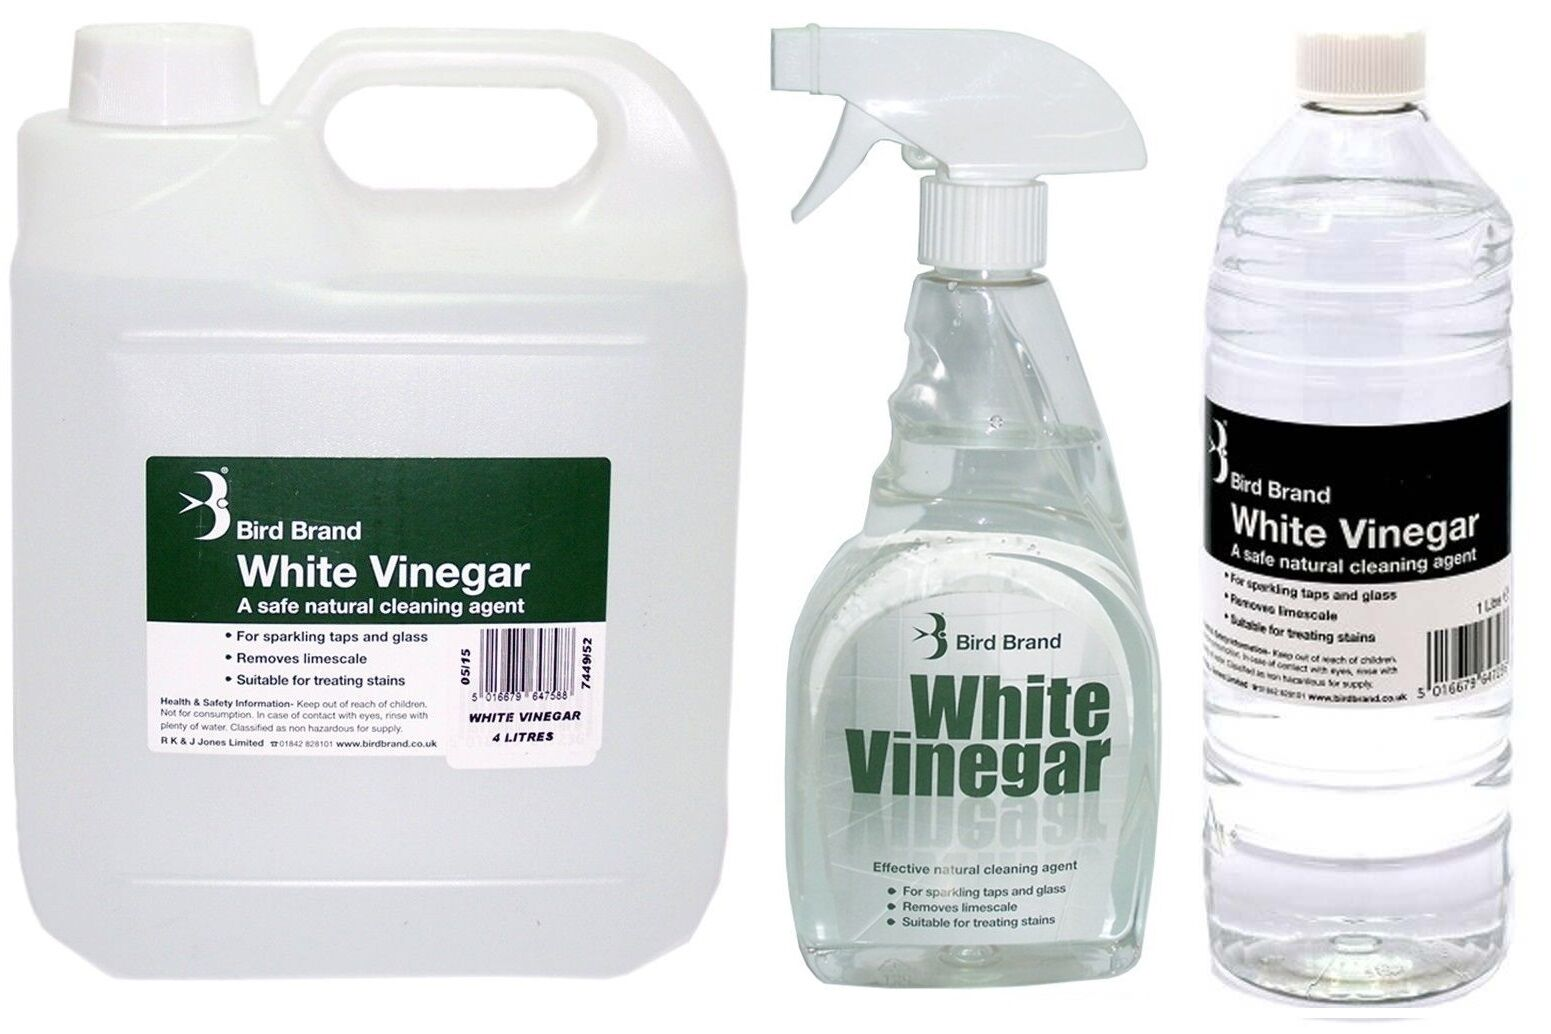 bird brand white vinegar cleaning solution limescale glass cleaner stain remover ebay. Black Bedroom Furniture Sets. Home Design Ideas